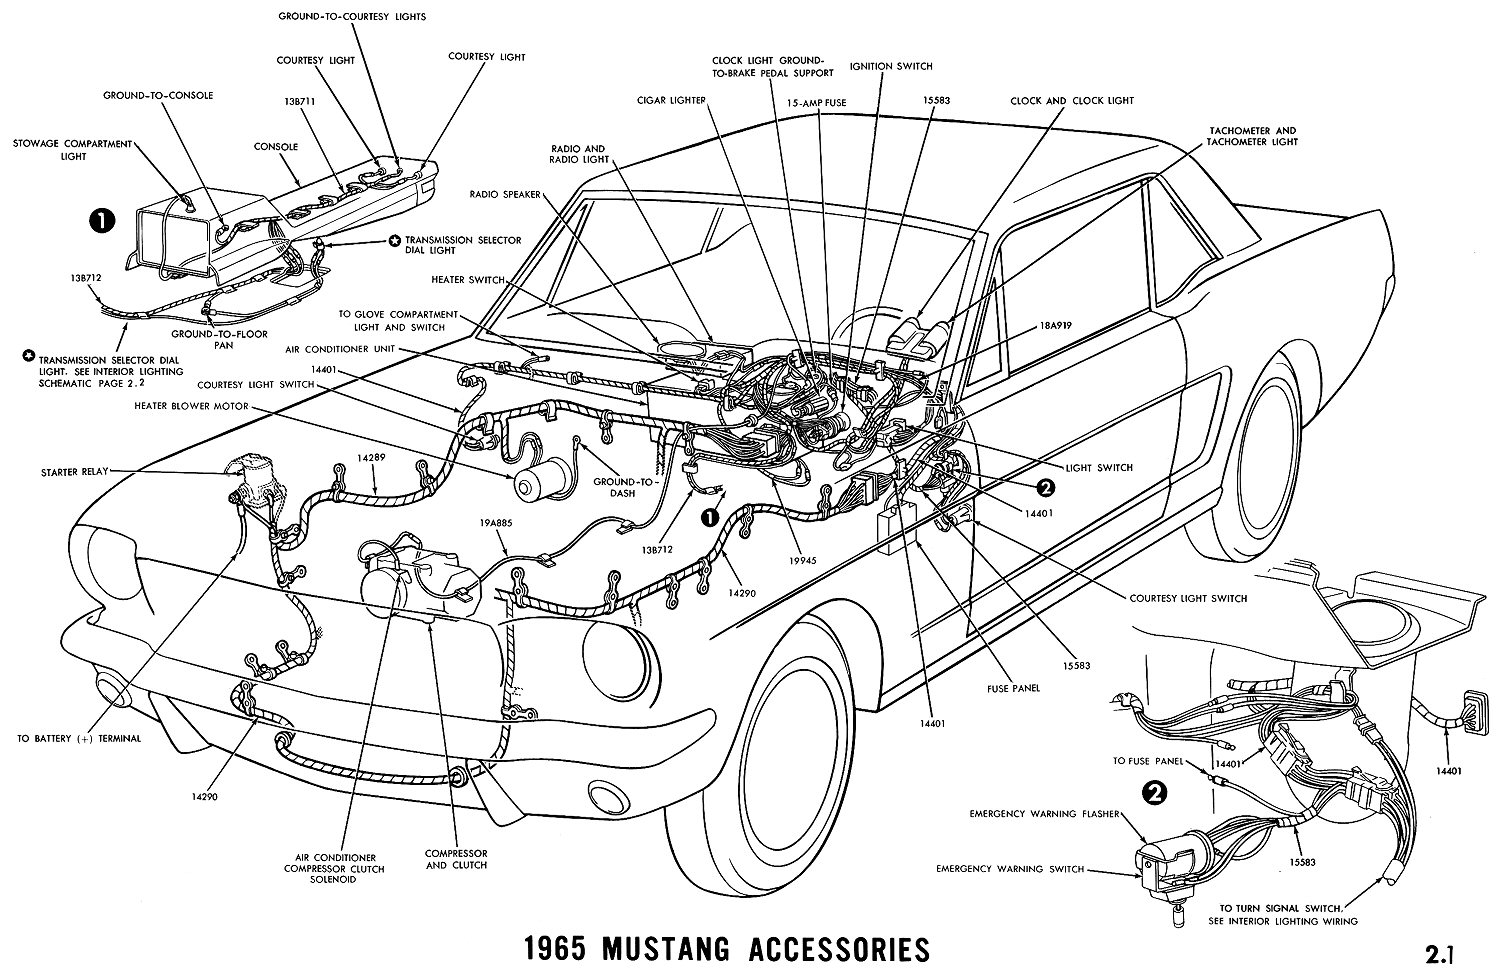 65 mustang accesories 1965 mustang accesories diagram 1965 mustang wiring harness diagram at fashall.co